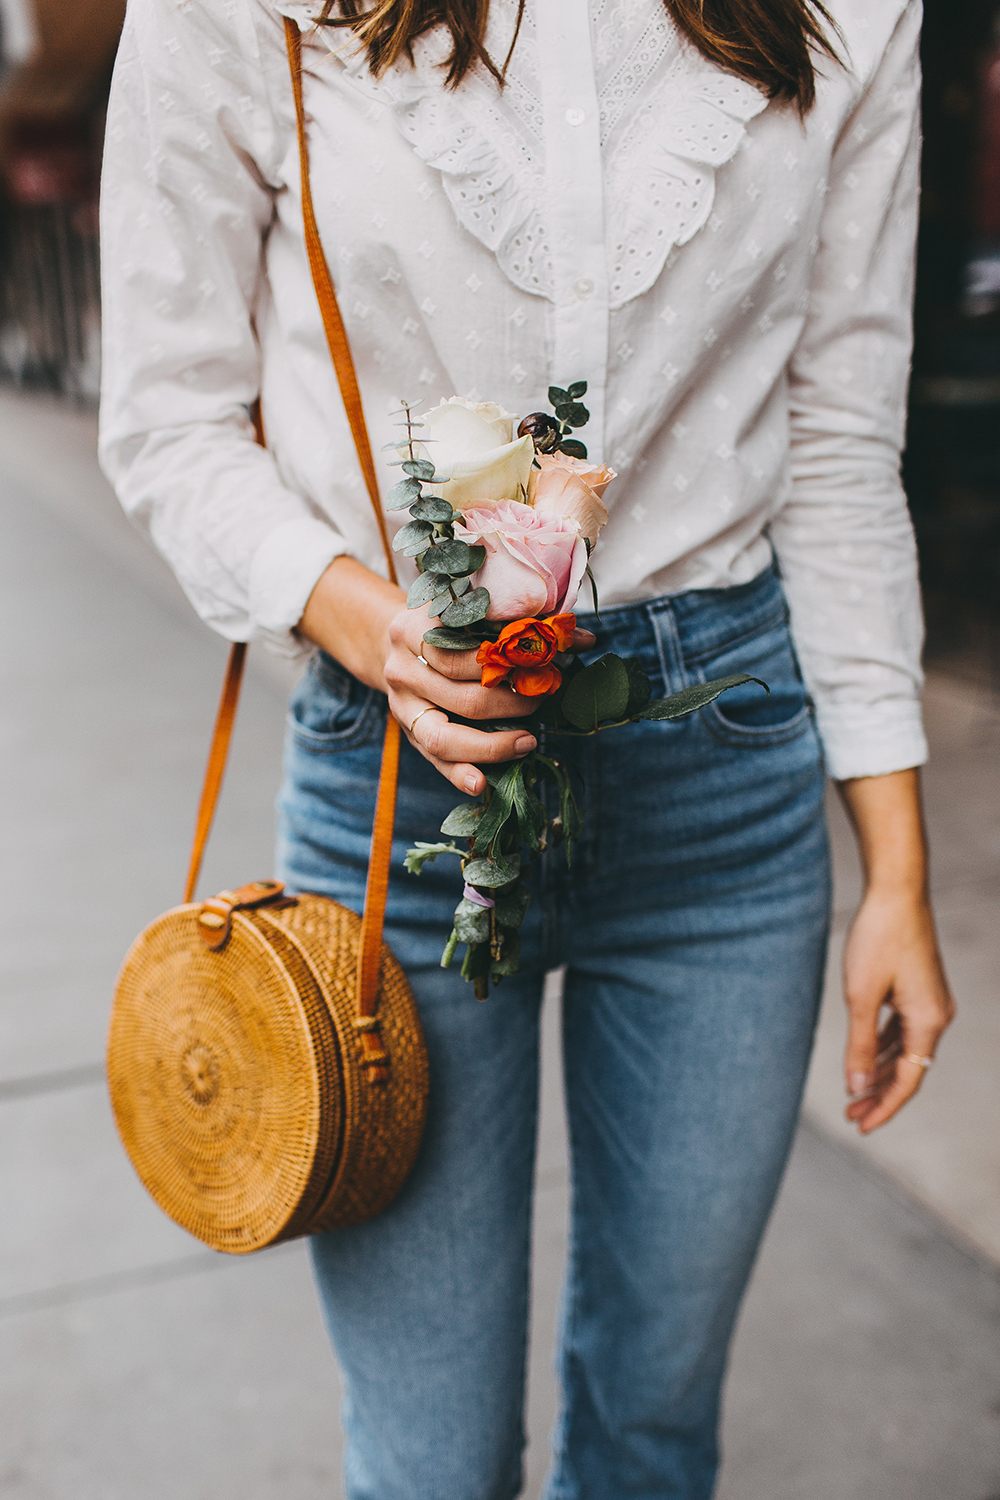 livvyland-blog-olivia-watson-austin-texas-fashion-style-blogger-sezane-white-eyelet-blouse-kick-flare-jeans-simple-spring-outfit-5